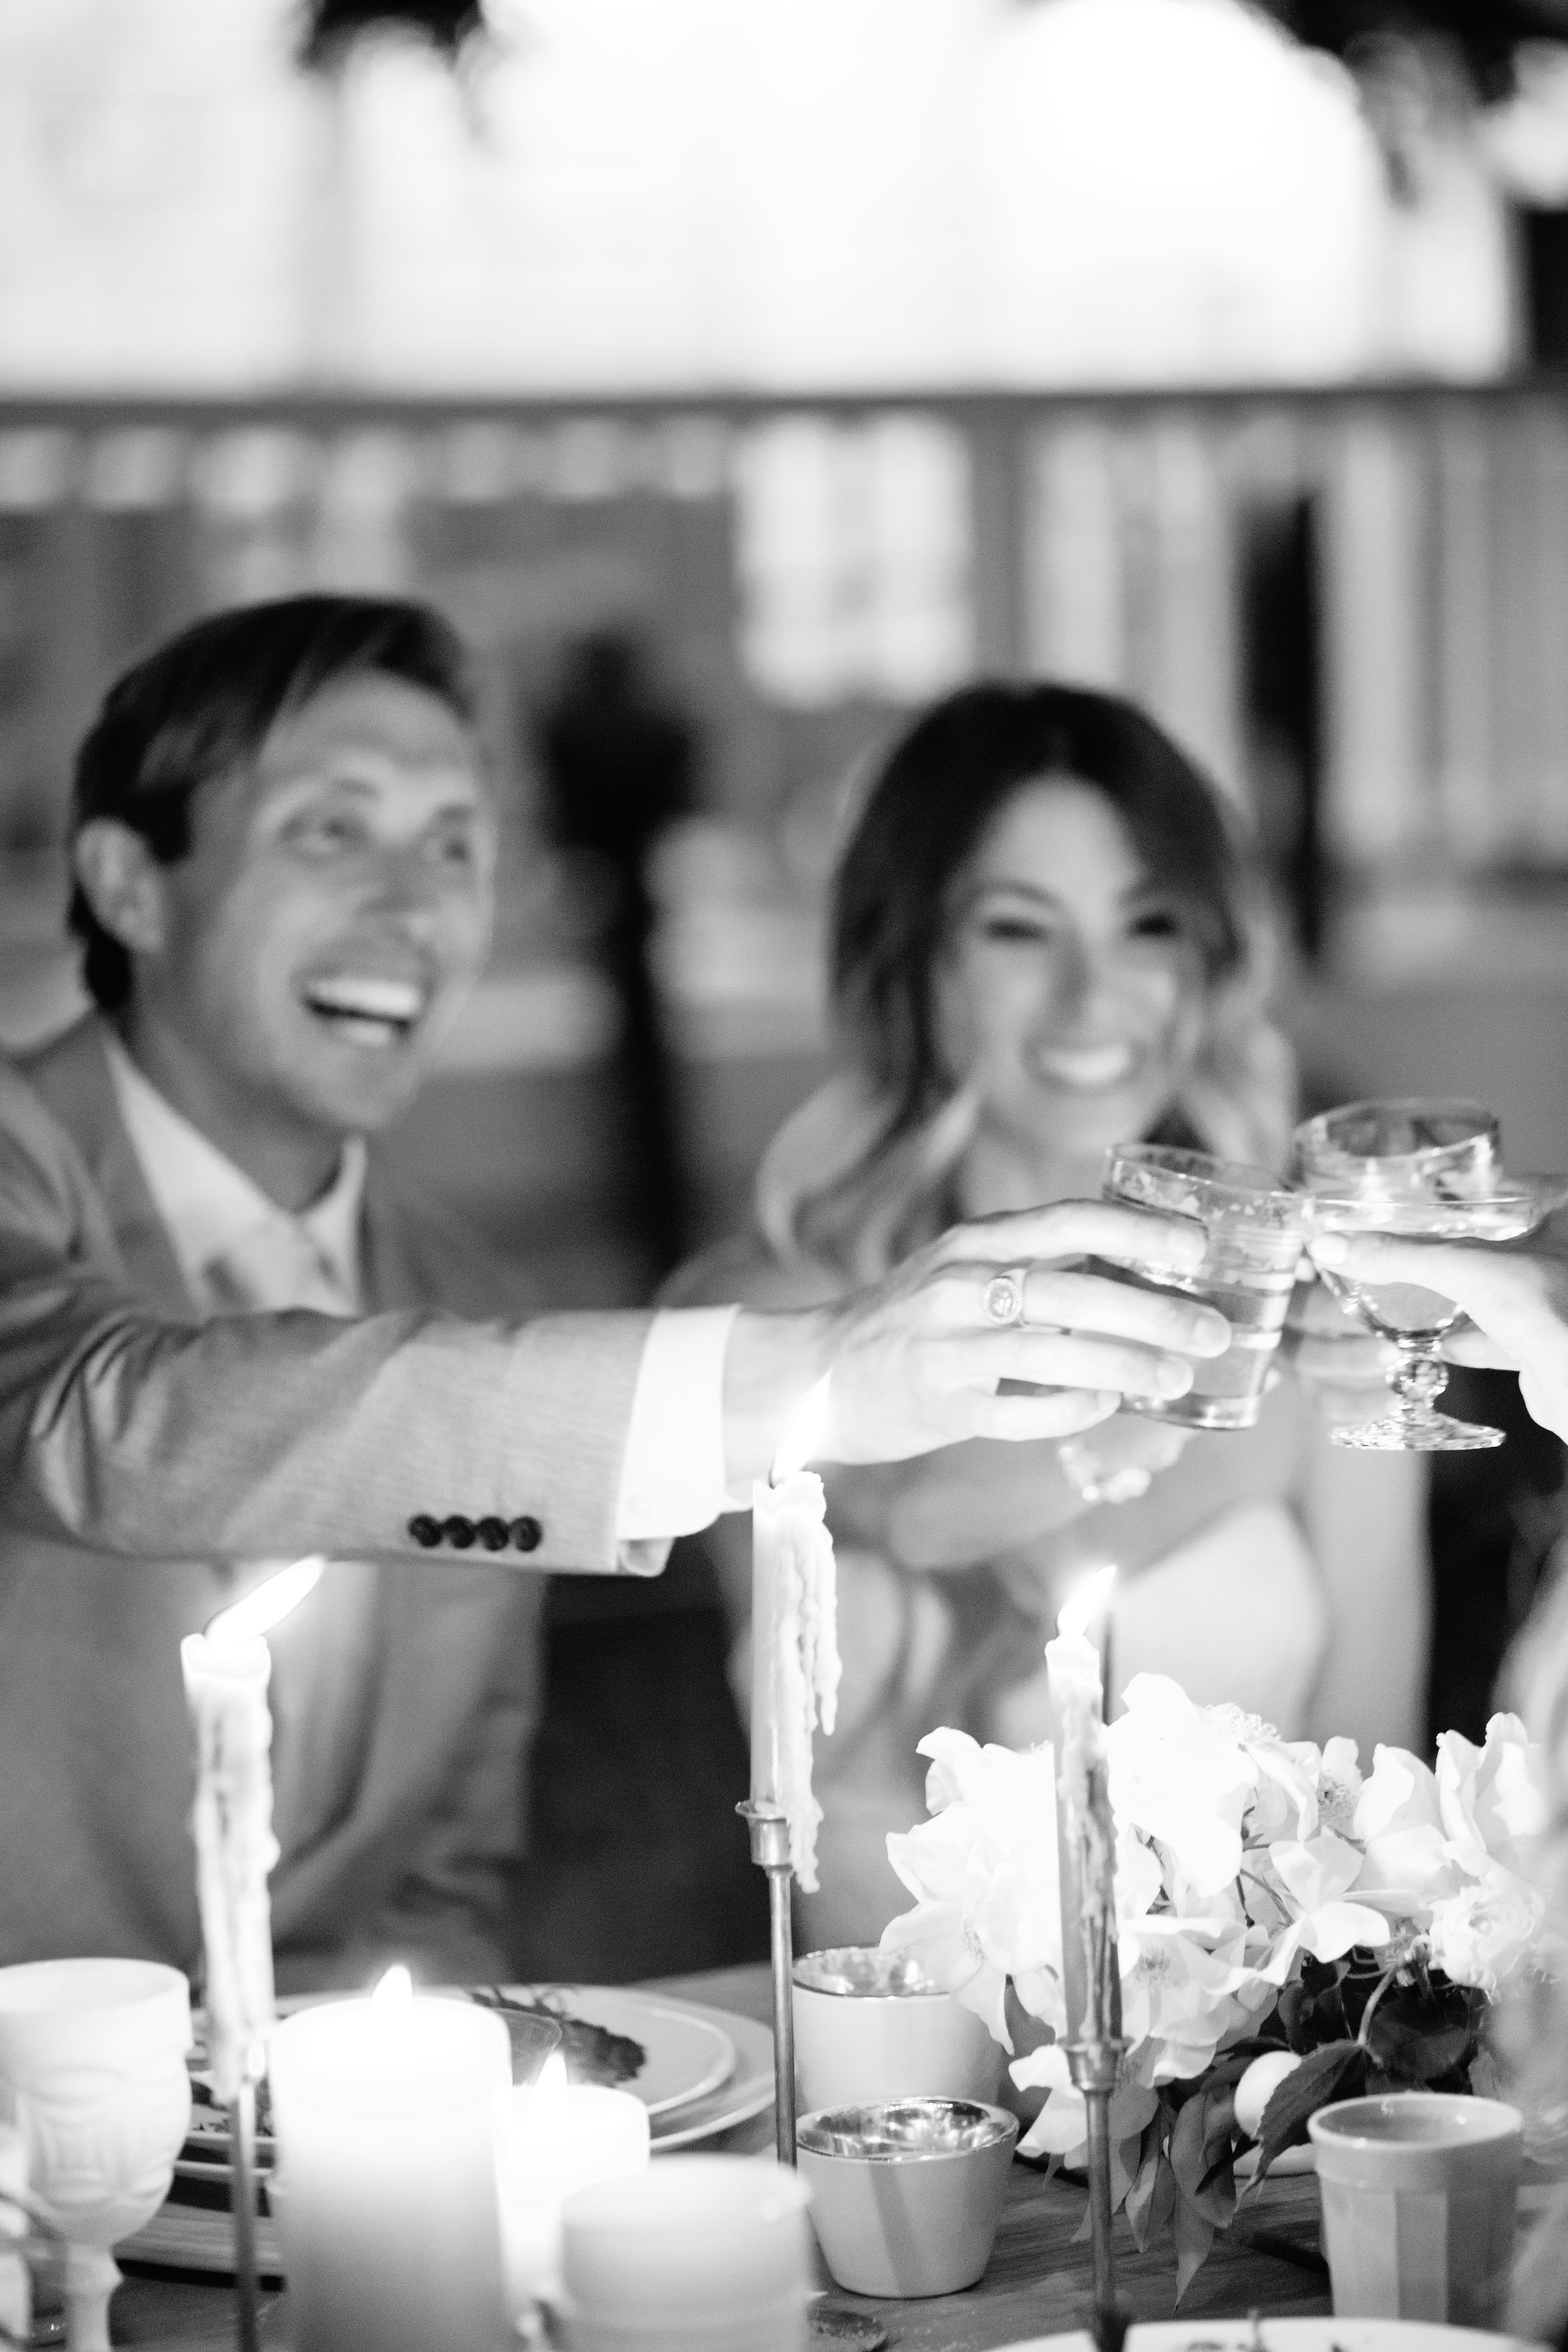 Tenley molzahn taylor leopold wedding toasts black and white